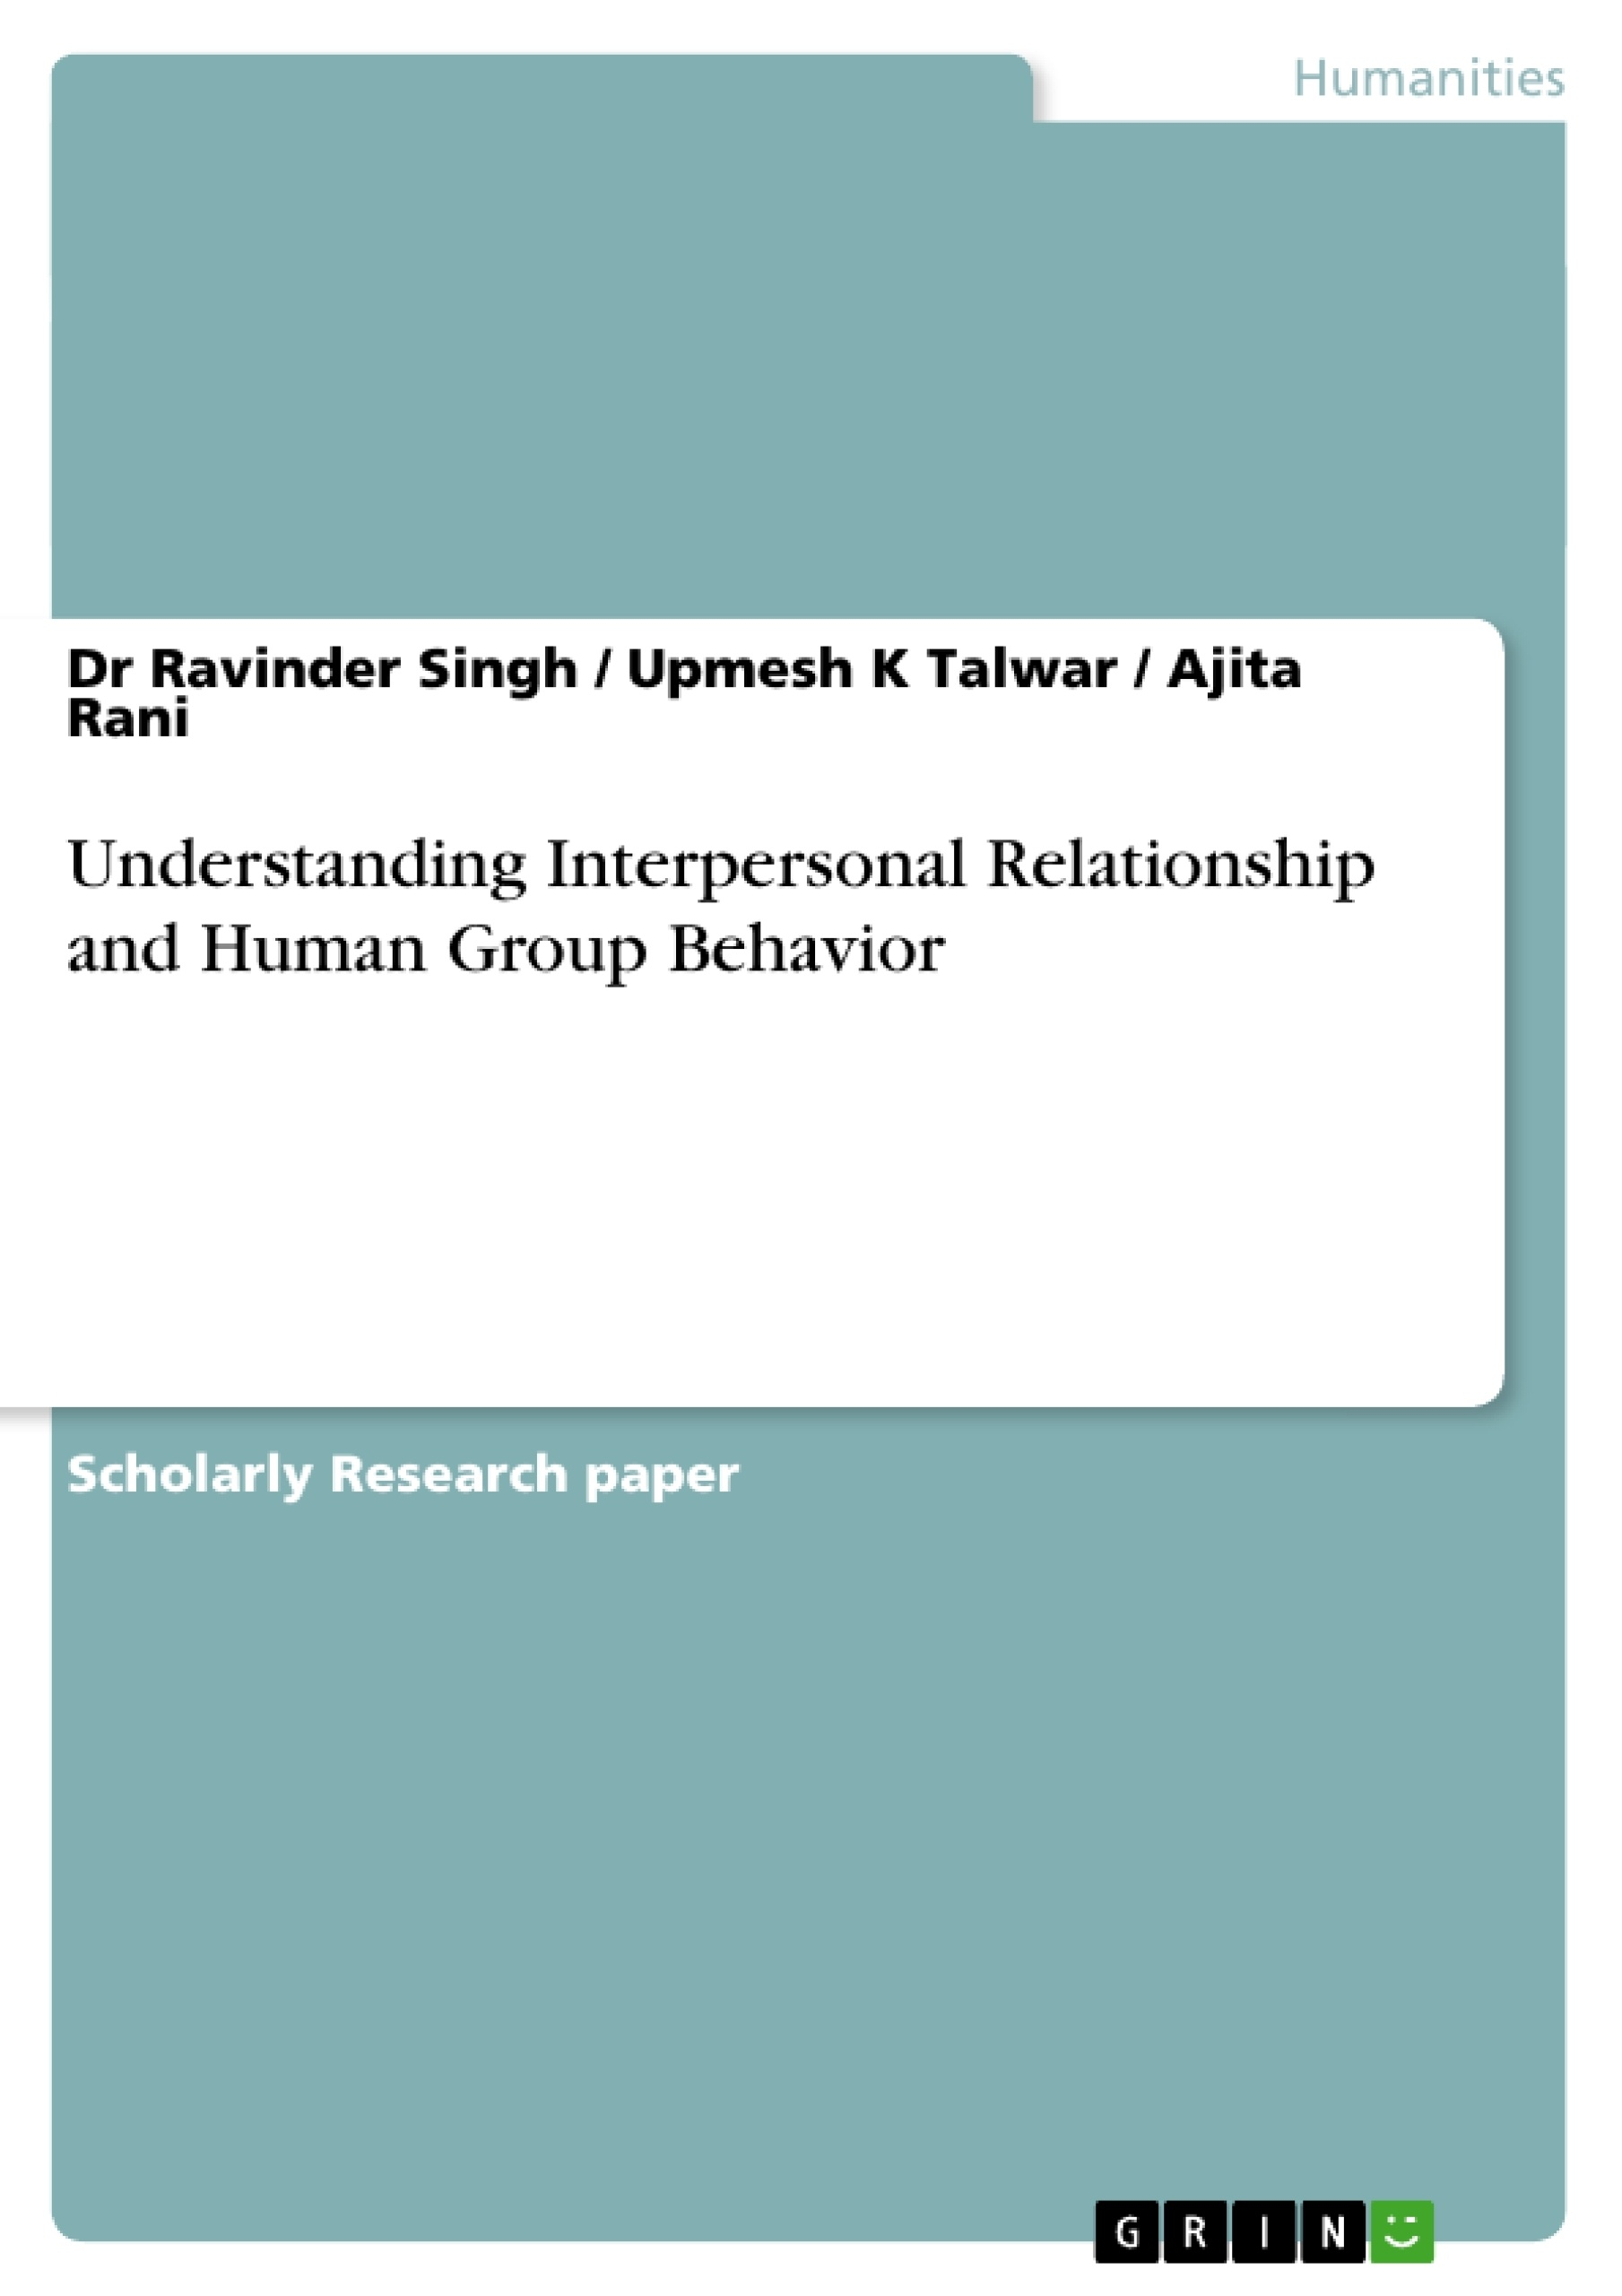 Title: Understanding Interpersonal Relationship and Human Group Behavior